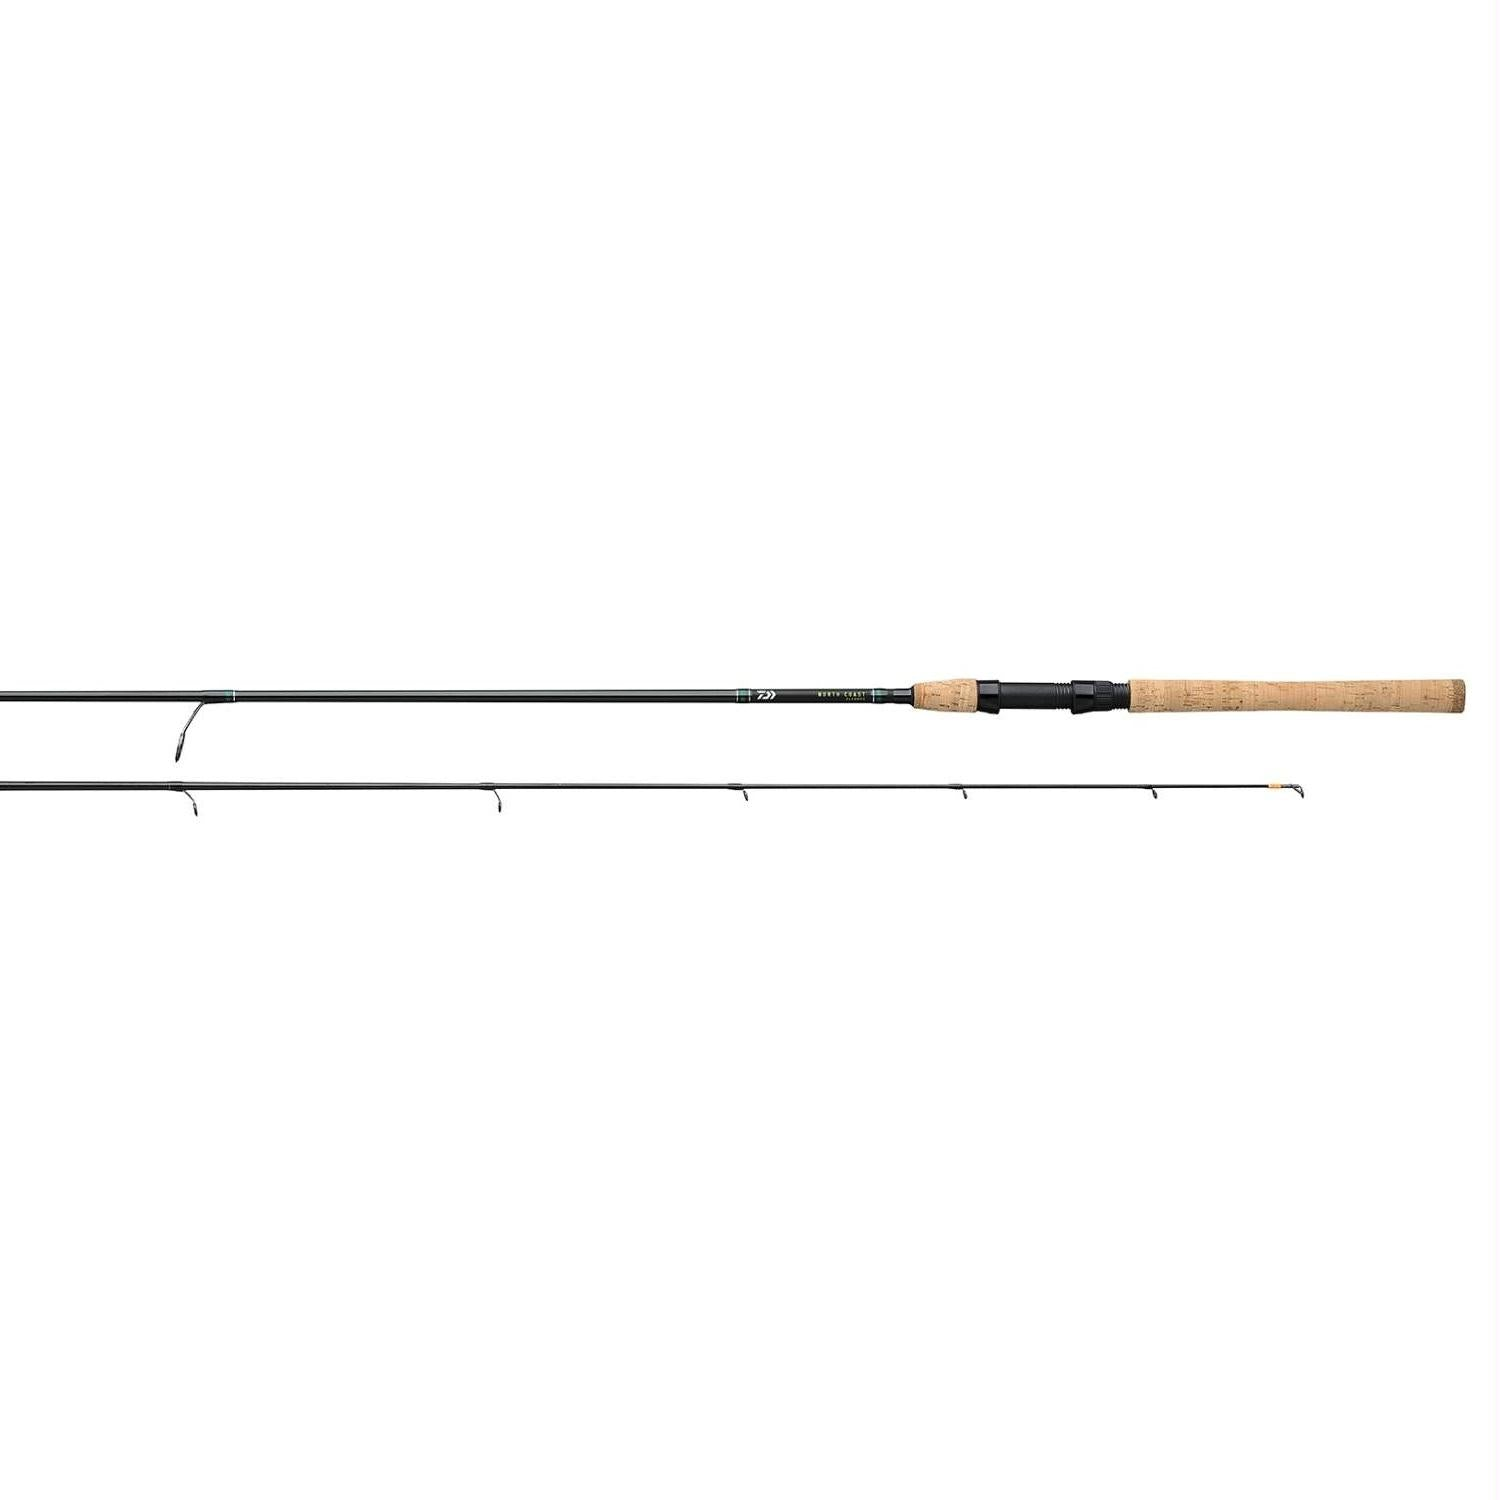 Daiwa North Coast SS Rod 2 Pieces Line Wt 8-17 NC902MHFS - Survival Camping Pro